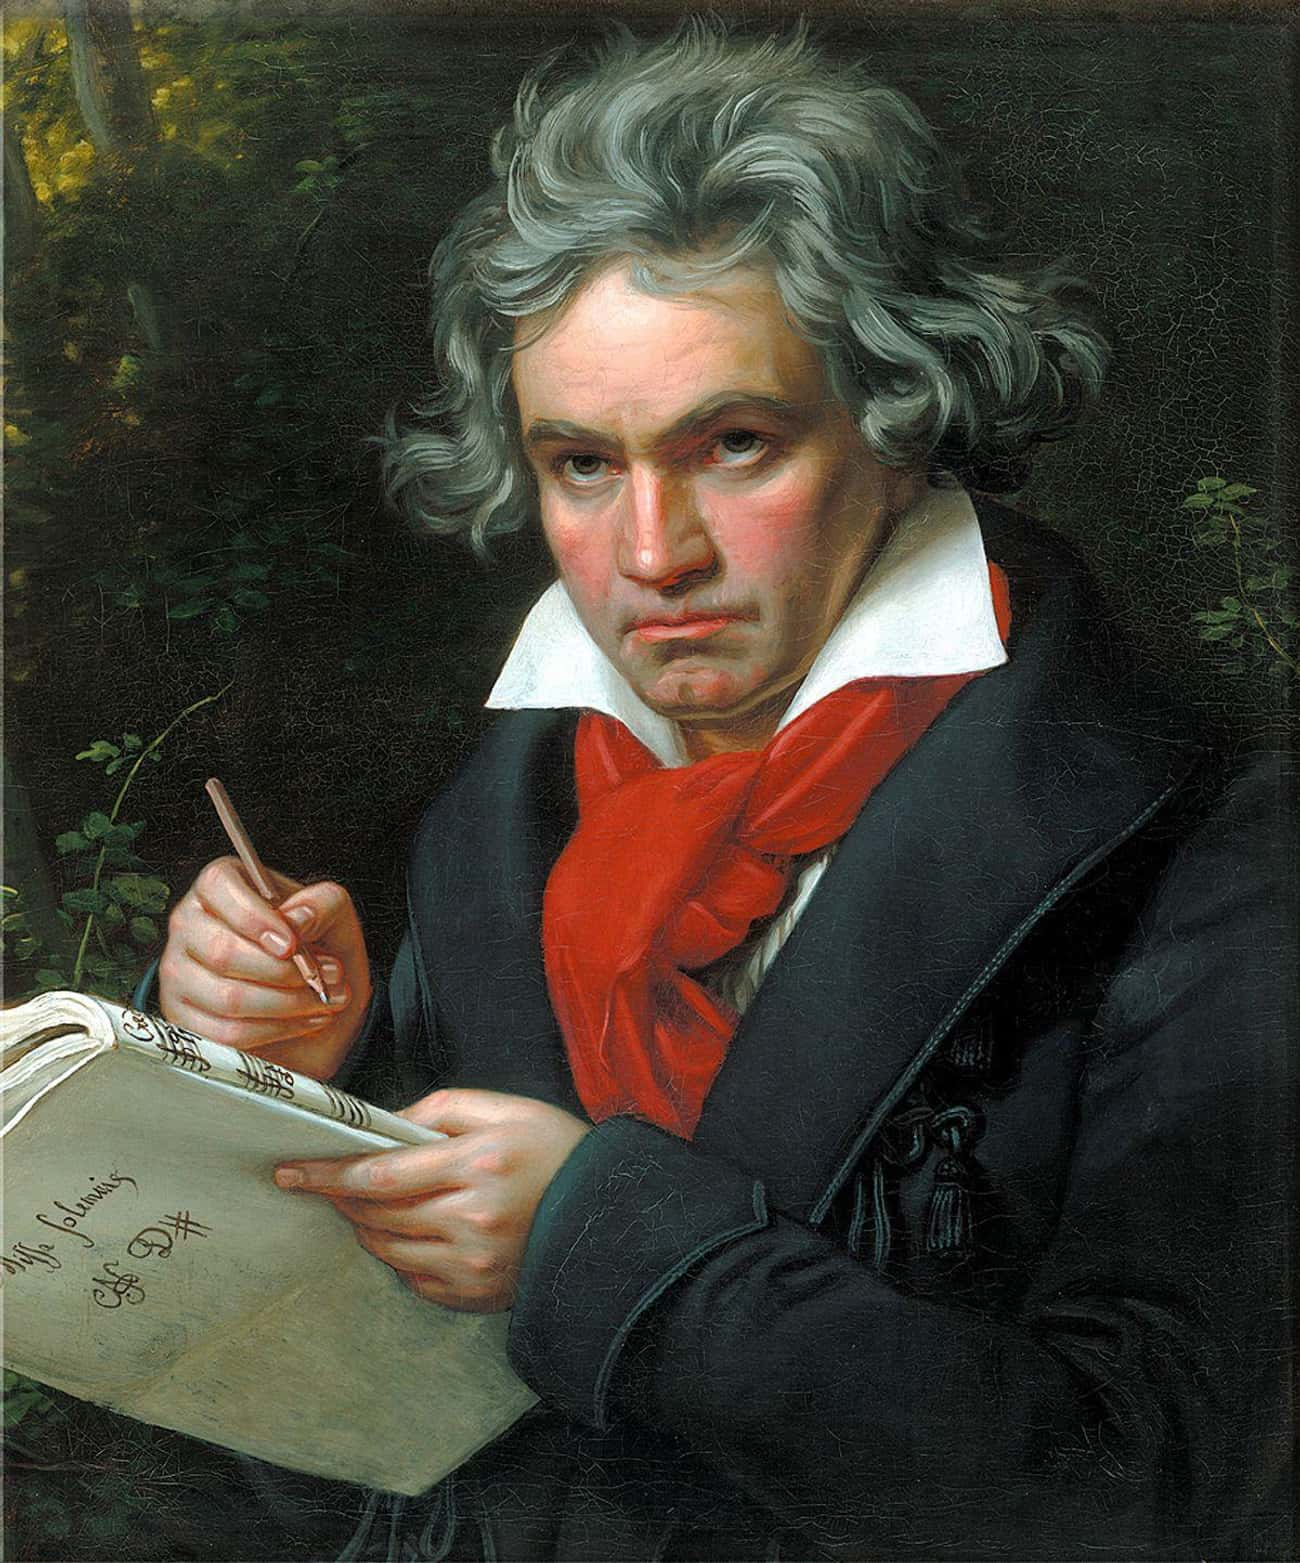 Ludwig van Beethoven Discovered A New Way To Hear When He Went Deaf